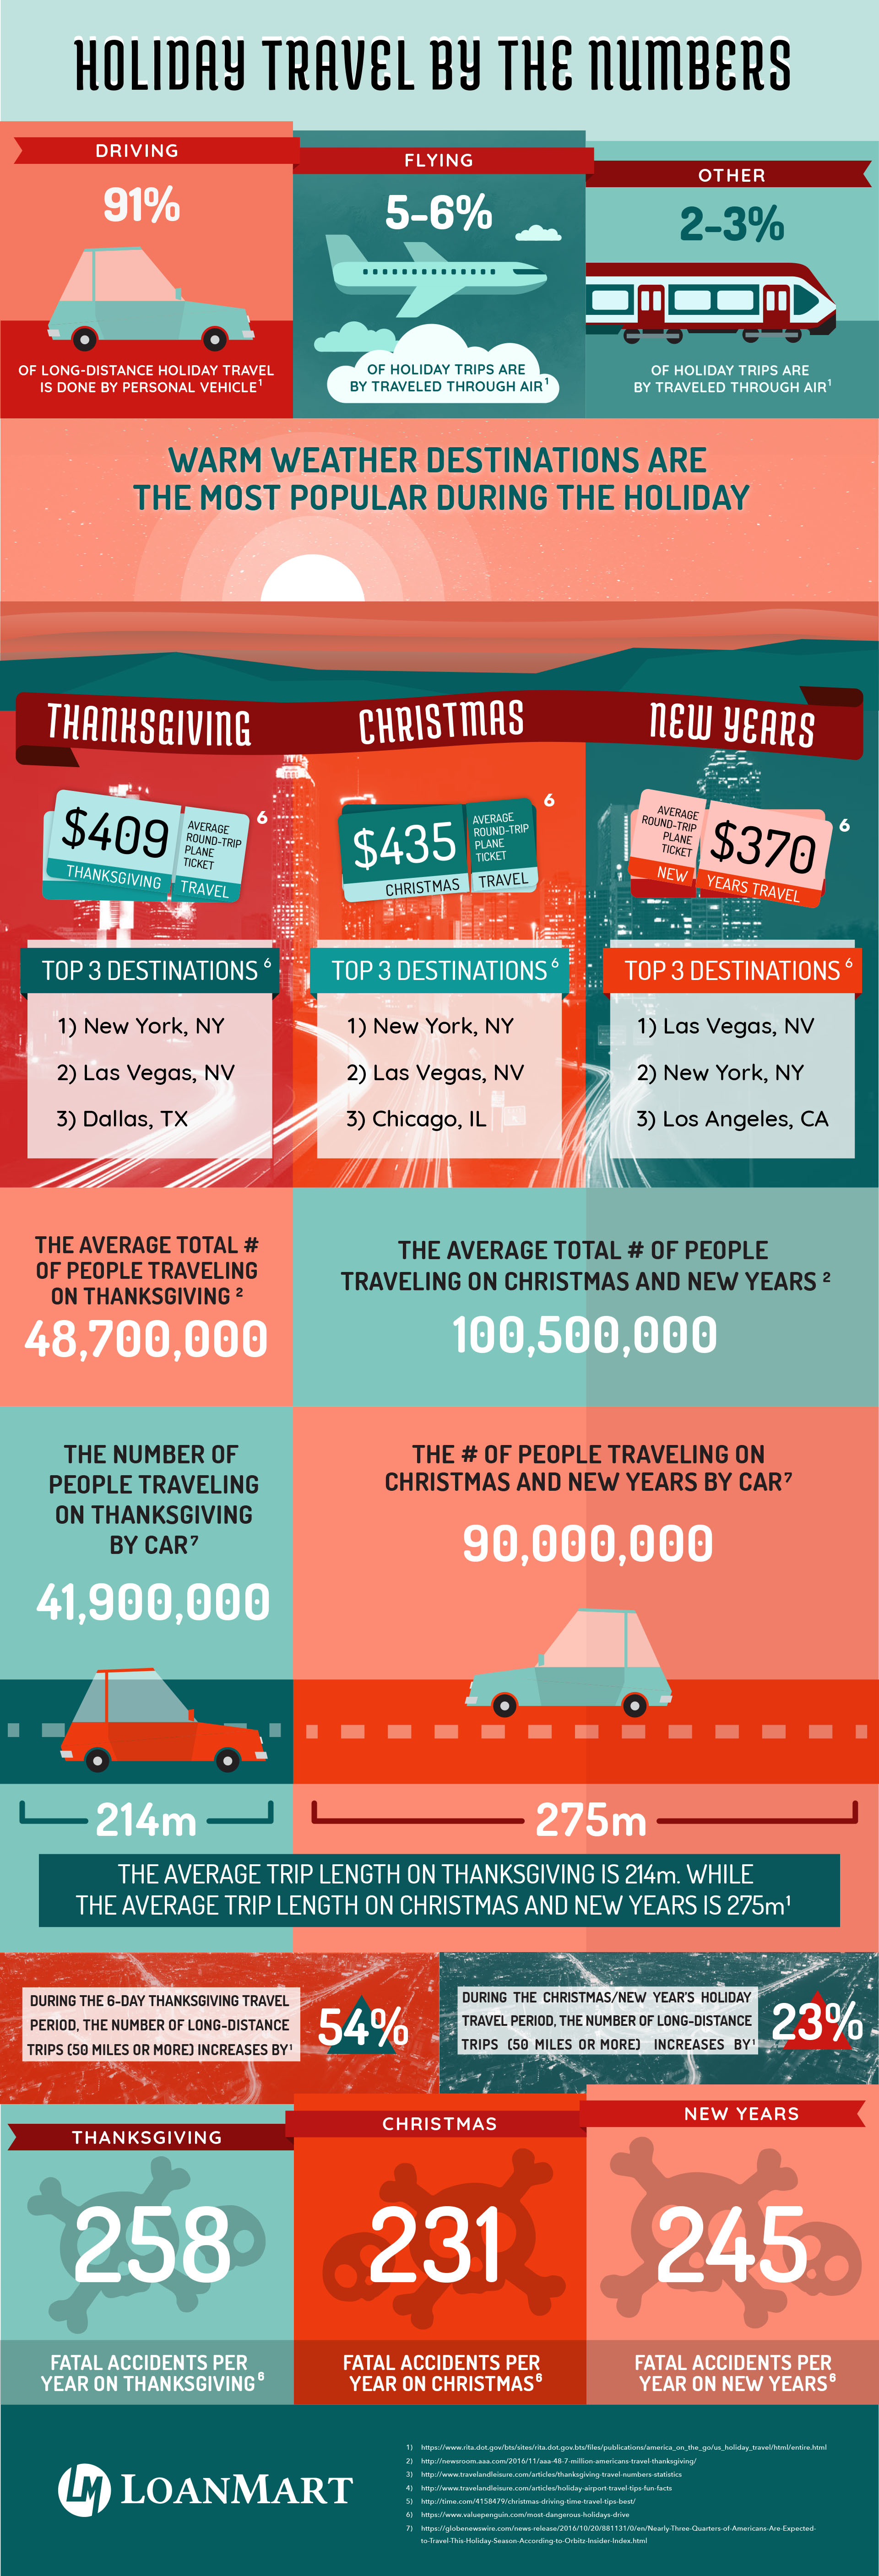 Holiday Travel by the Numbers